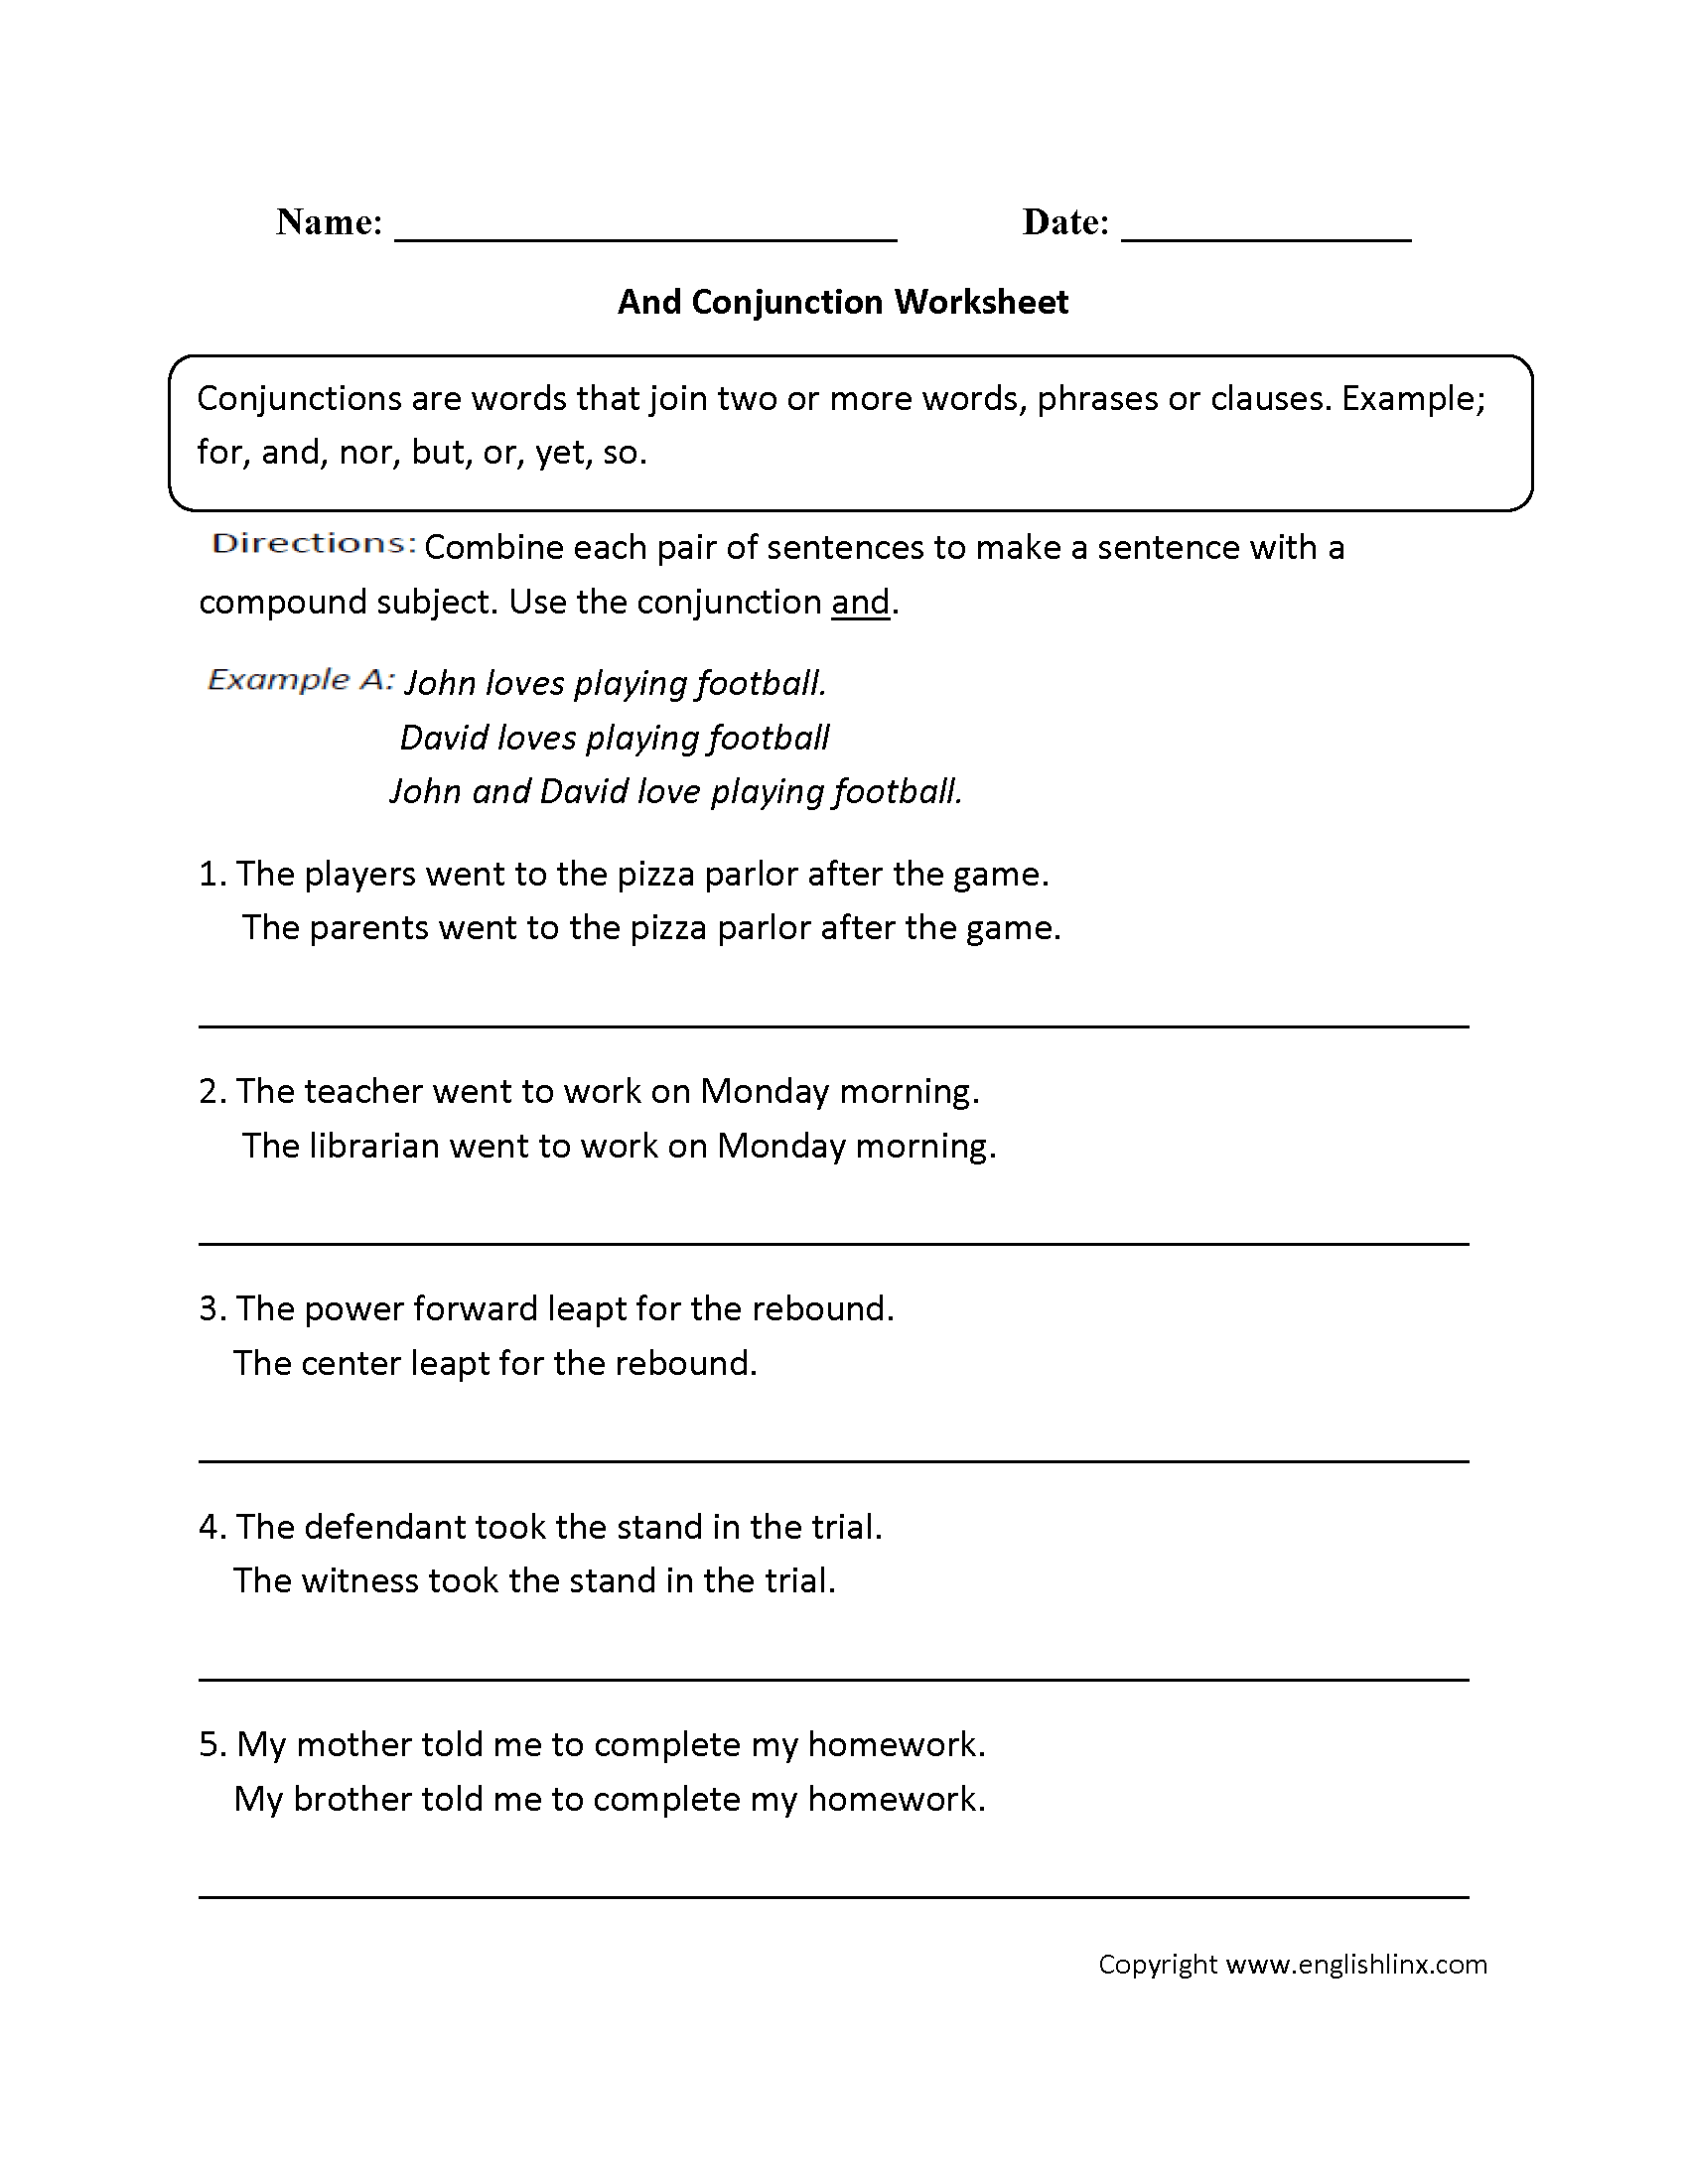 Conjunction Worksheets For Middle School